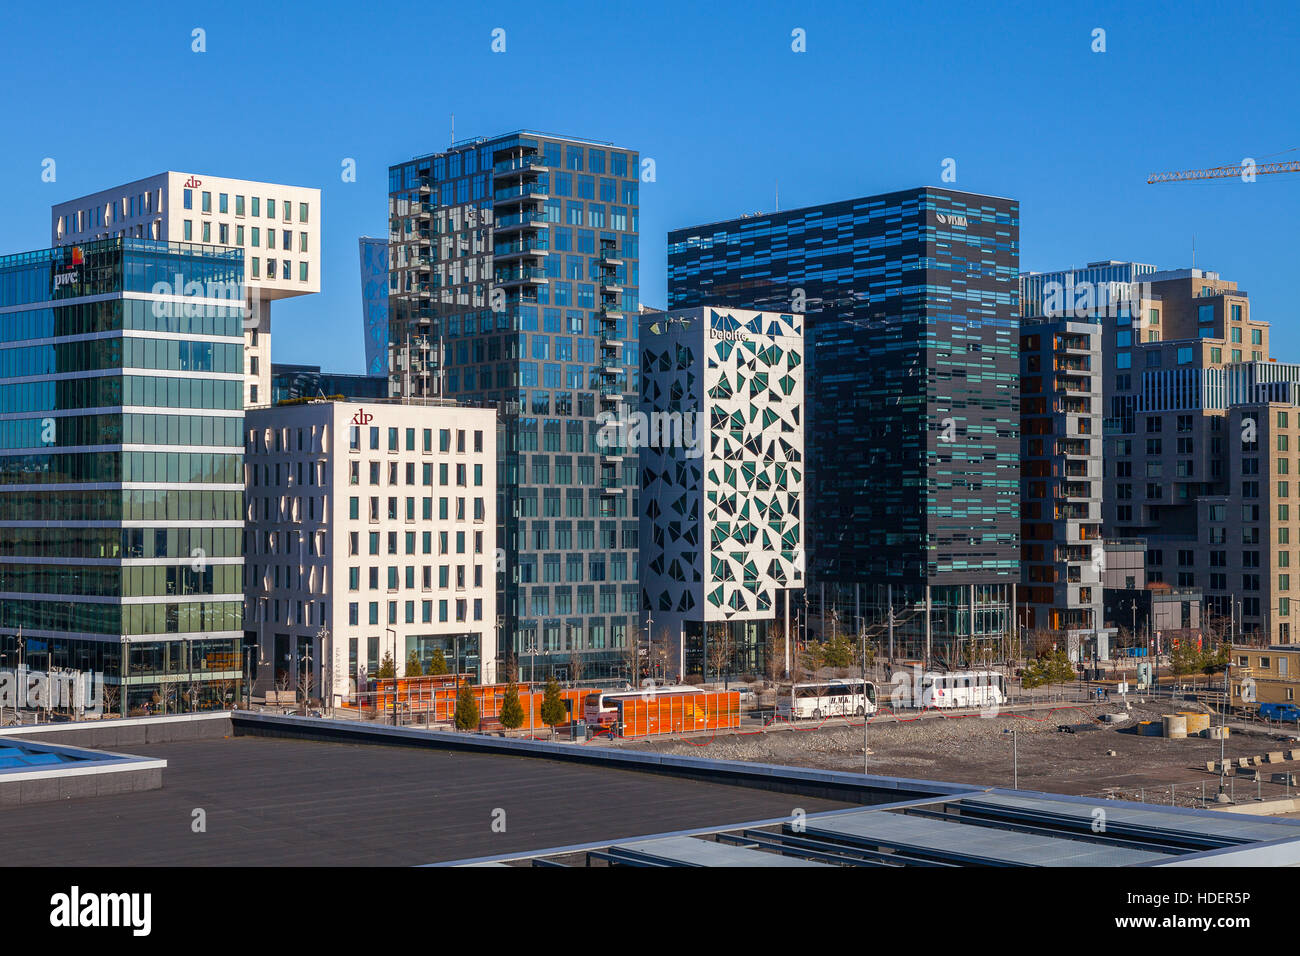 Business buildings known as 'Barcode' in downtown, one of city's symbols. Oslo, Norway - Stock Image